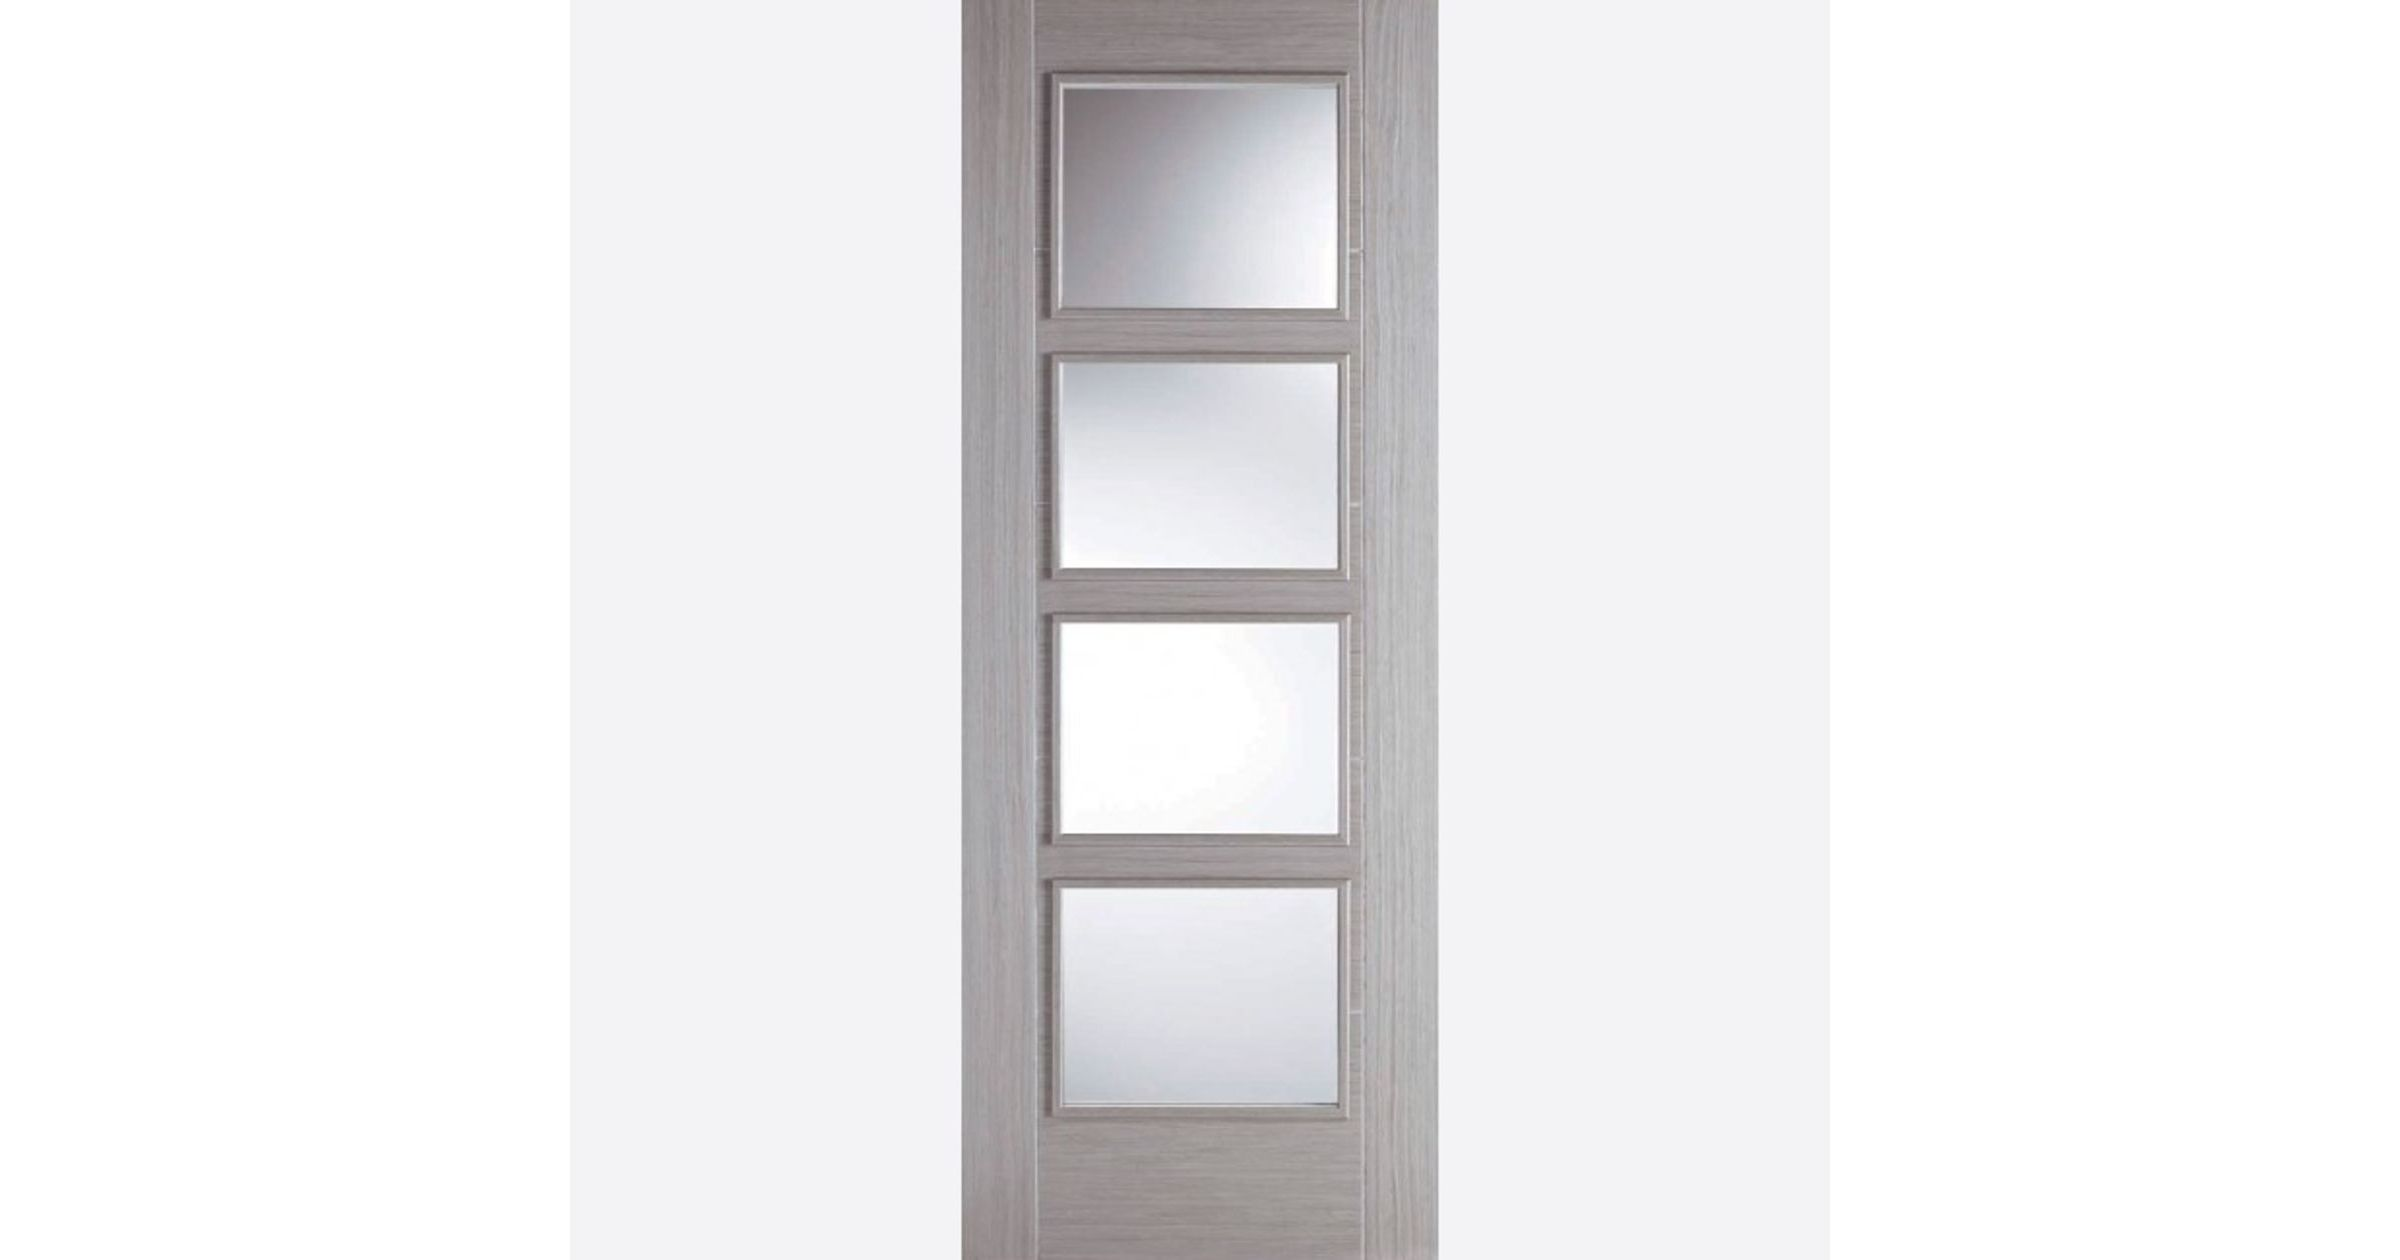 Vancouver Glazed Door: 4-light *Clear Glazed* *Pre-Finished Light-Grey* 35mm Internal Door - LPD Colour Doors